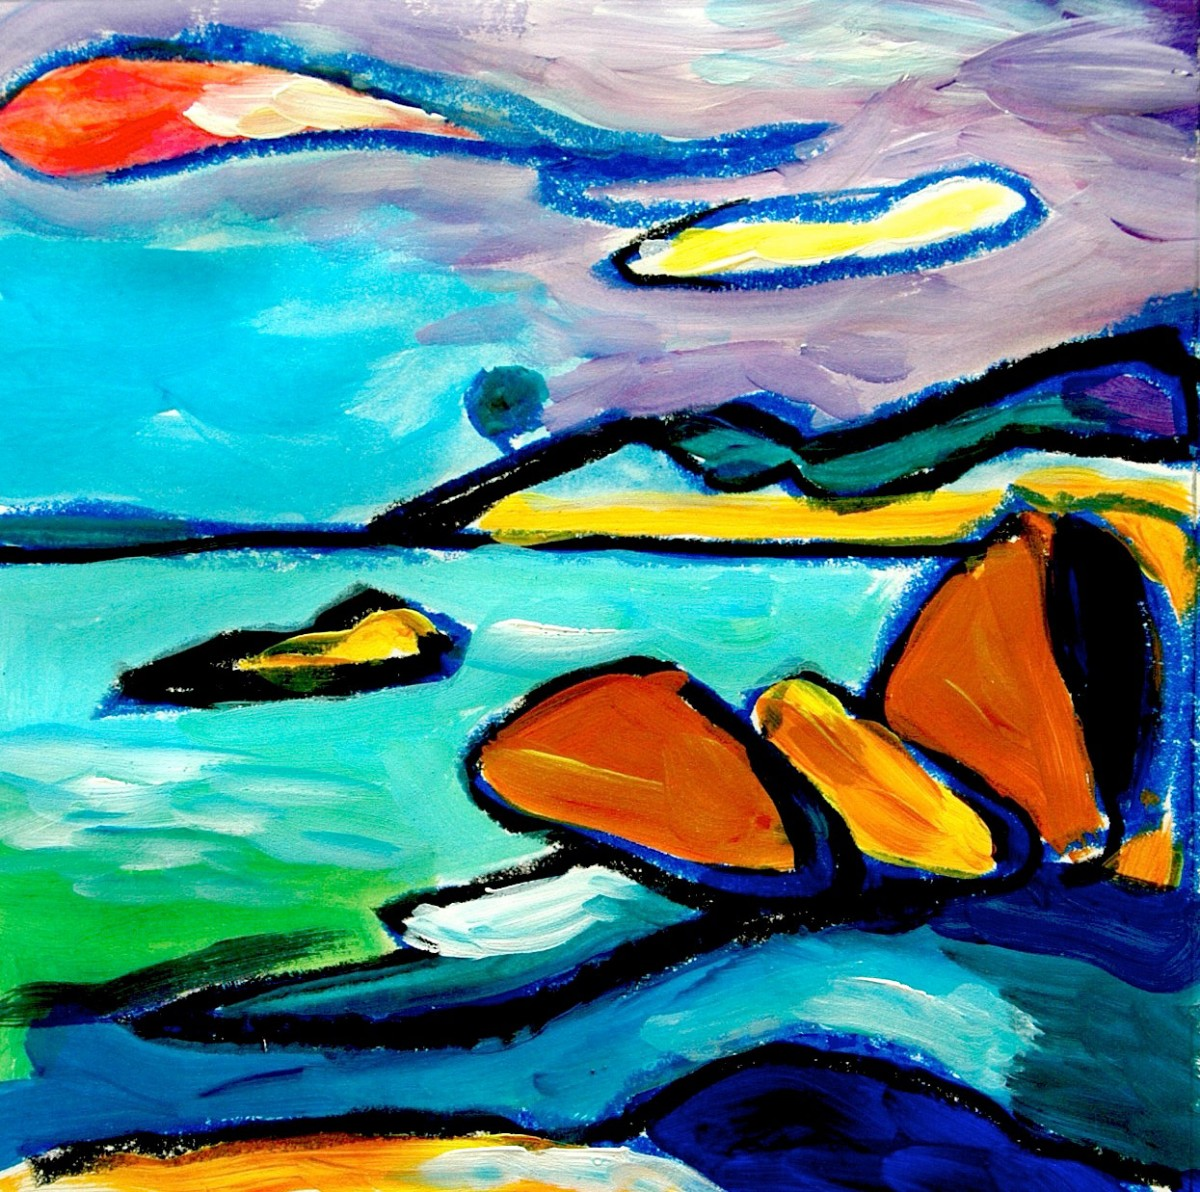 hight resolution of Inspired by the Kandinsky's landscapes